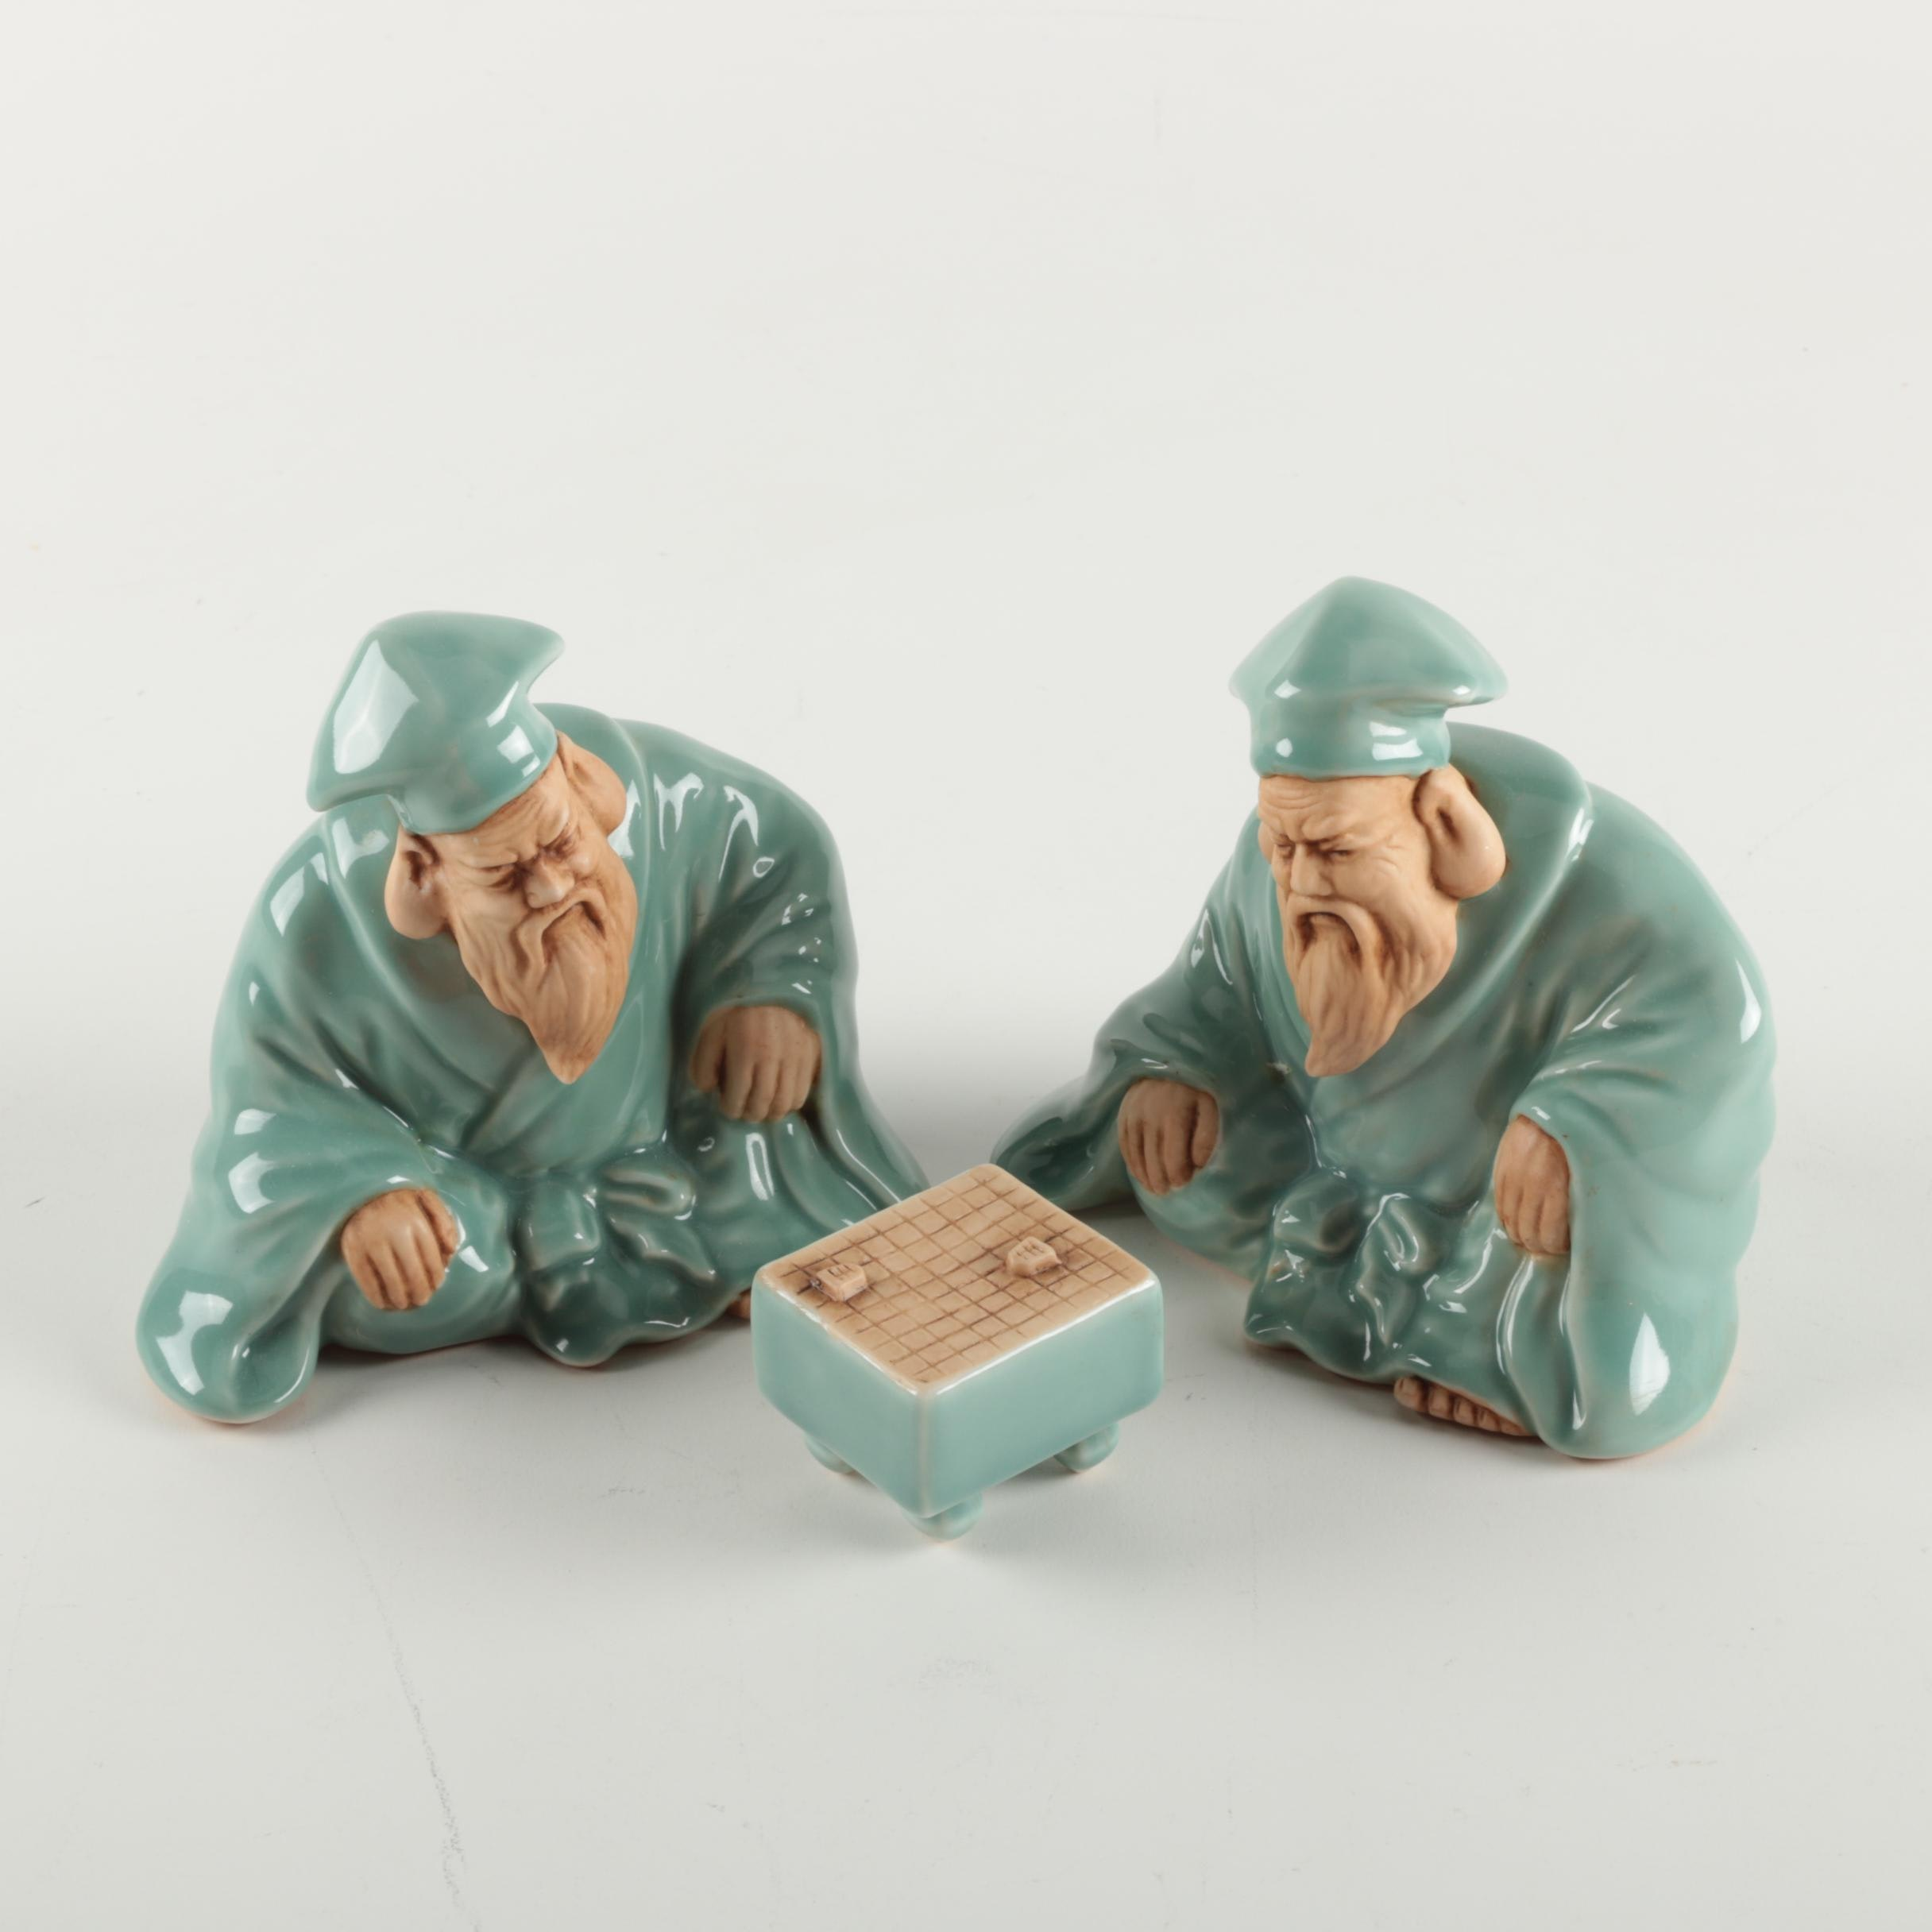 Asian Inspired Ceramic Figurines Depicting Men With Table Game